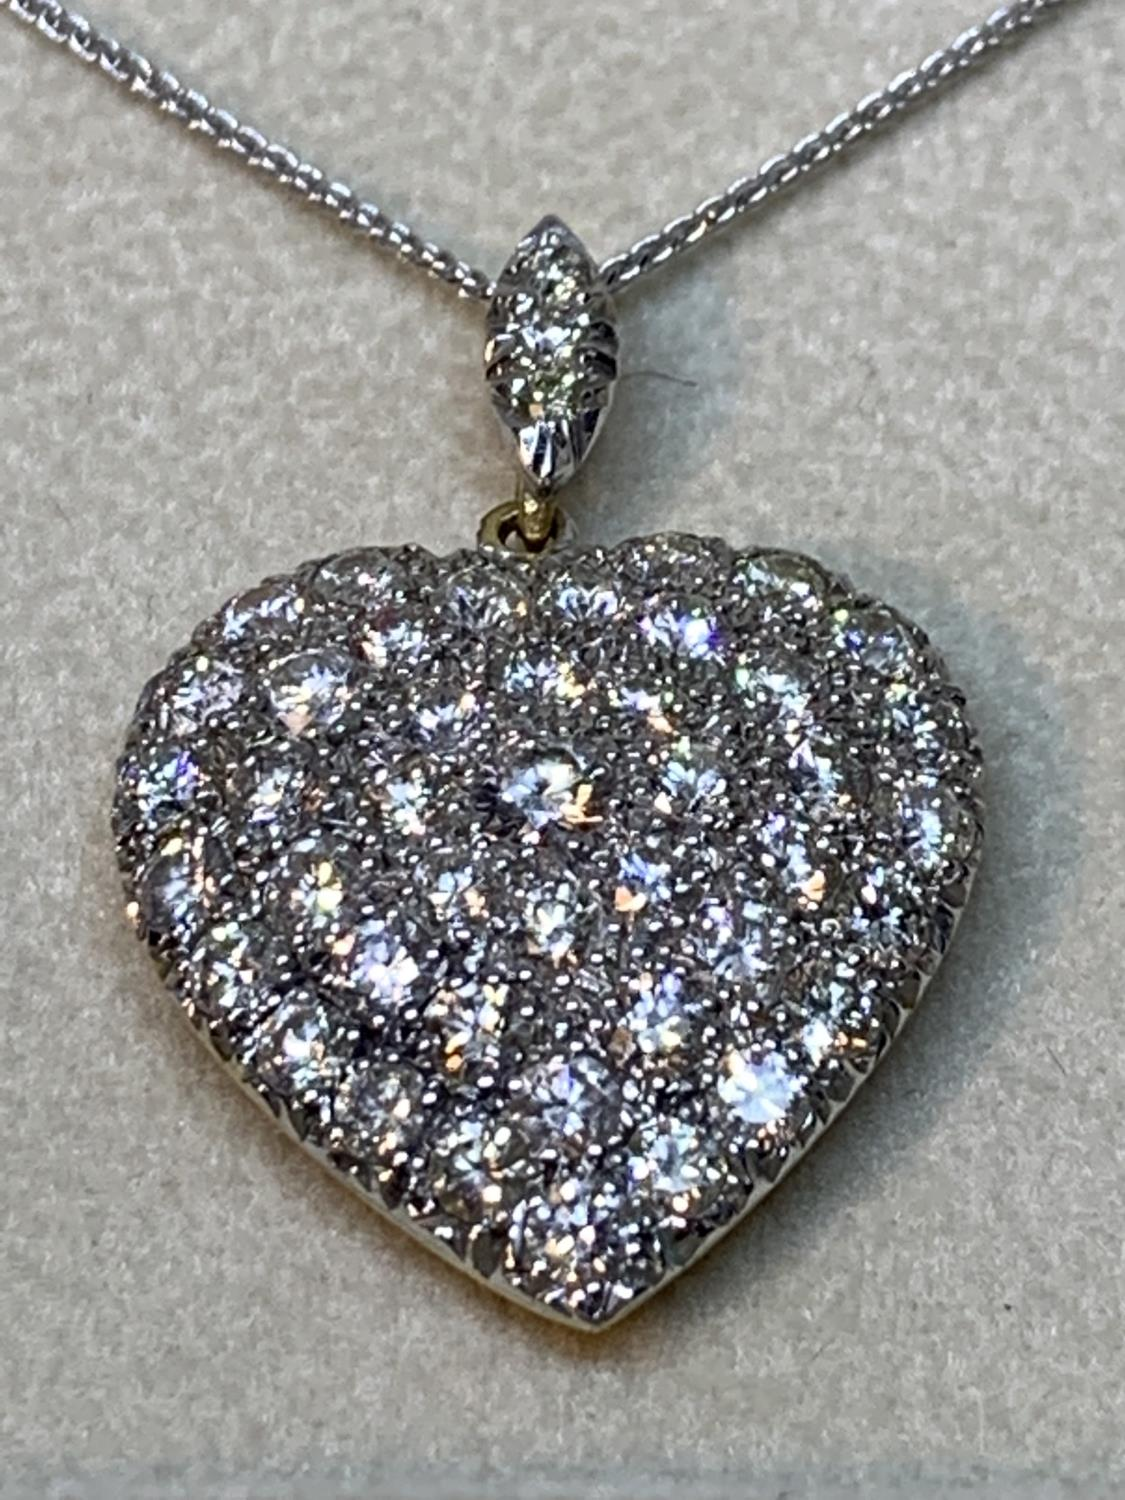 A 15 CARAT WHITE AND YELLOW GOLD LARGE DIAMOND ENCRUSTED HEART PENDANT WITH CHAIN LENGTH 44CM IN A - Image 4 of 8